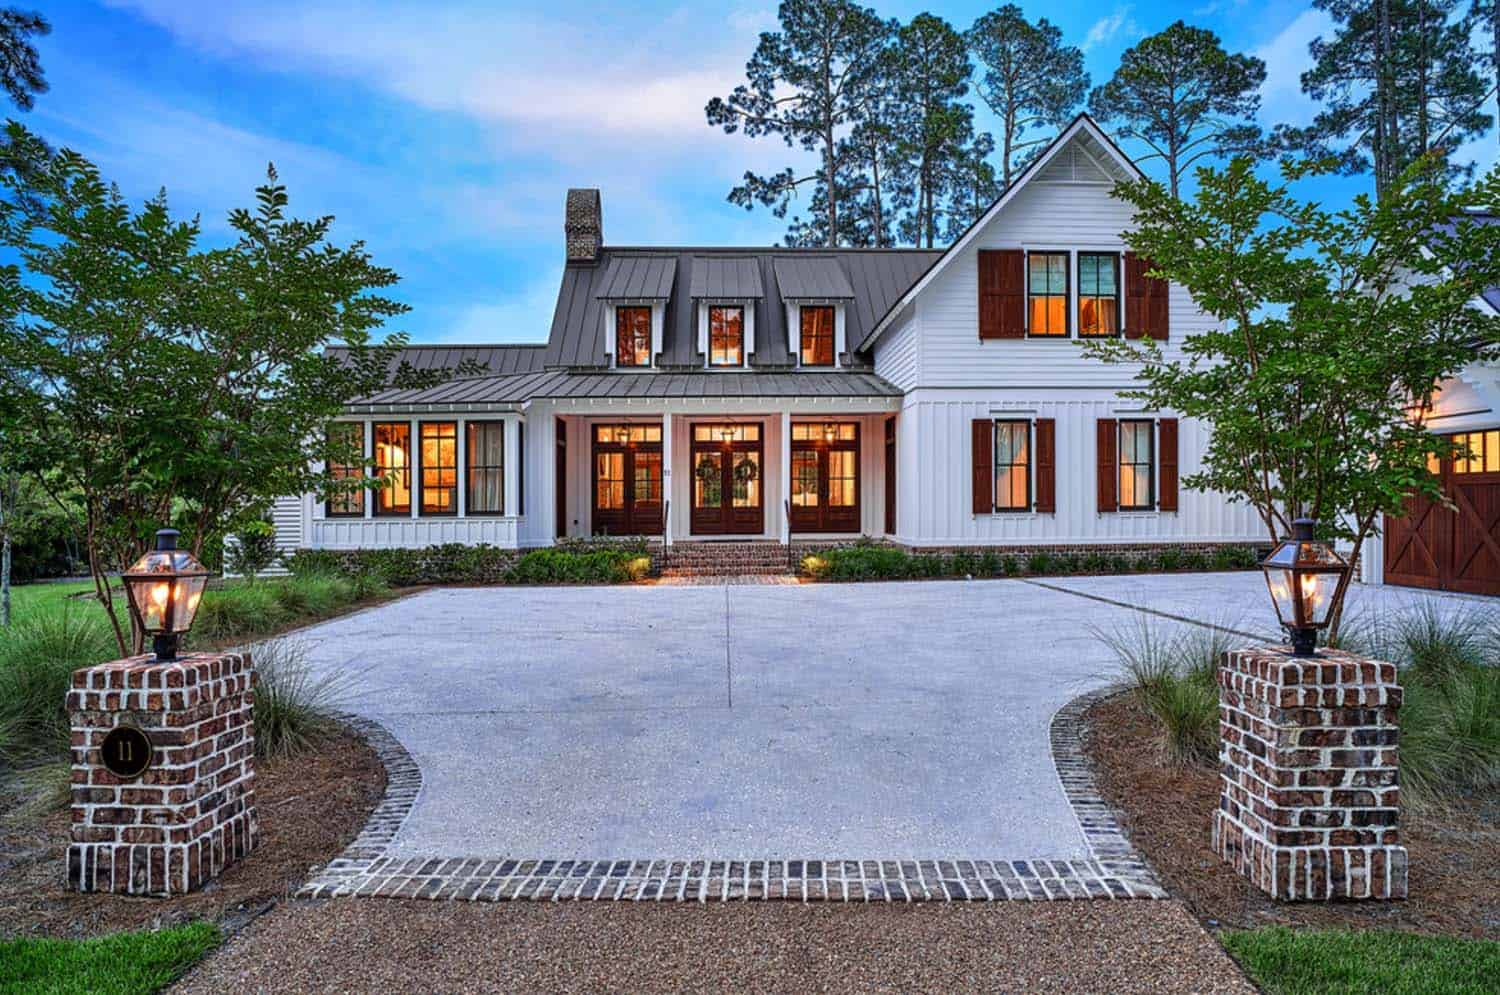 Exquisite south carolina farmhouse evoking a low country style for Home architectures